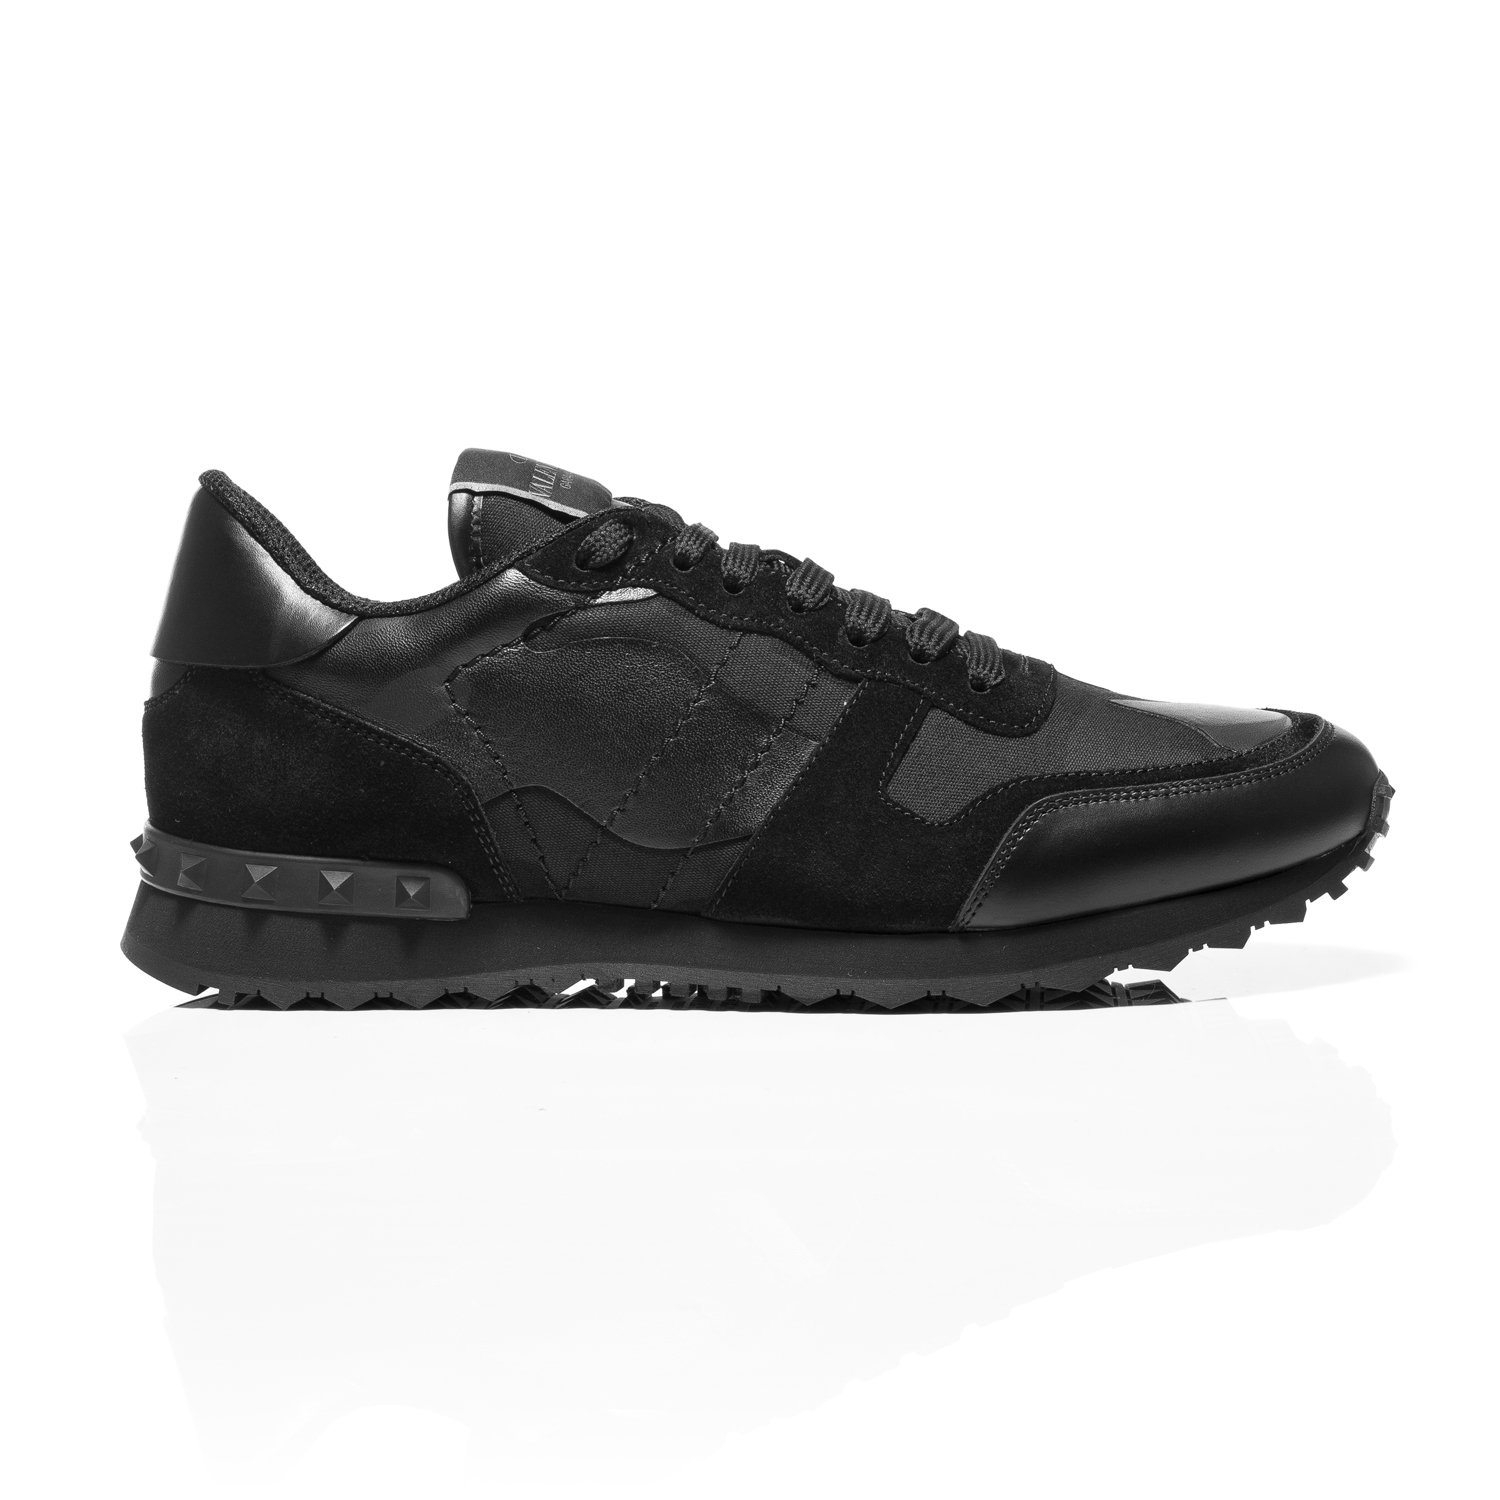 07643484ccc0 Valentino Black Rockrunner Camouflage-Print Canvas, Leather   Suede  Sneakers (6.5 UK)  Amazon.co.uk  Shoes   Bags